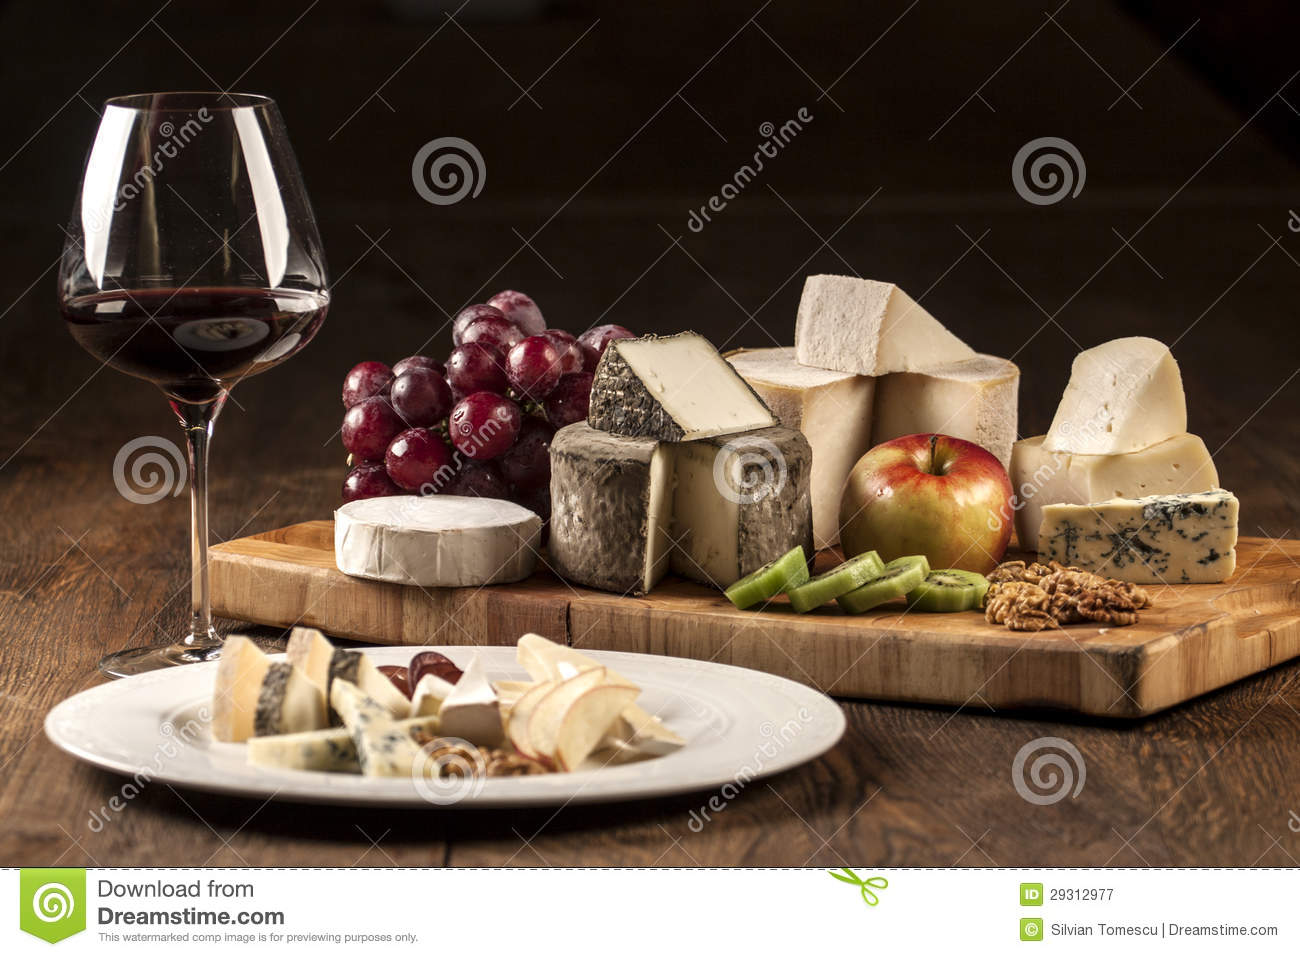 Wine And Cheese Plate Specialties Stock Image Image Of Cutting Brie 29312977